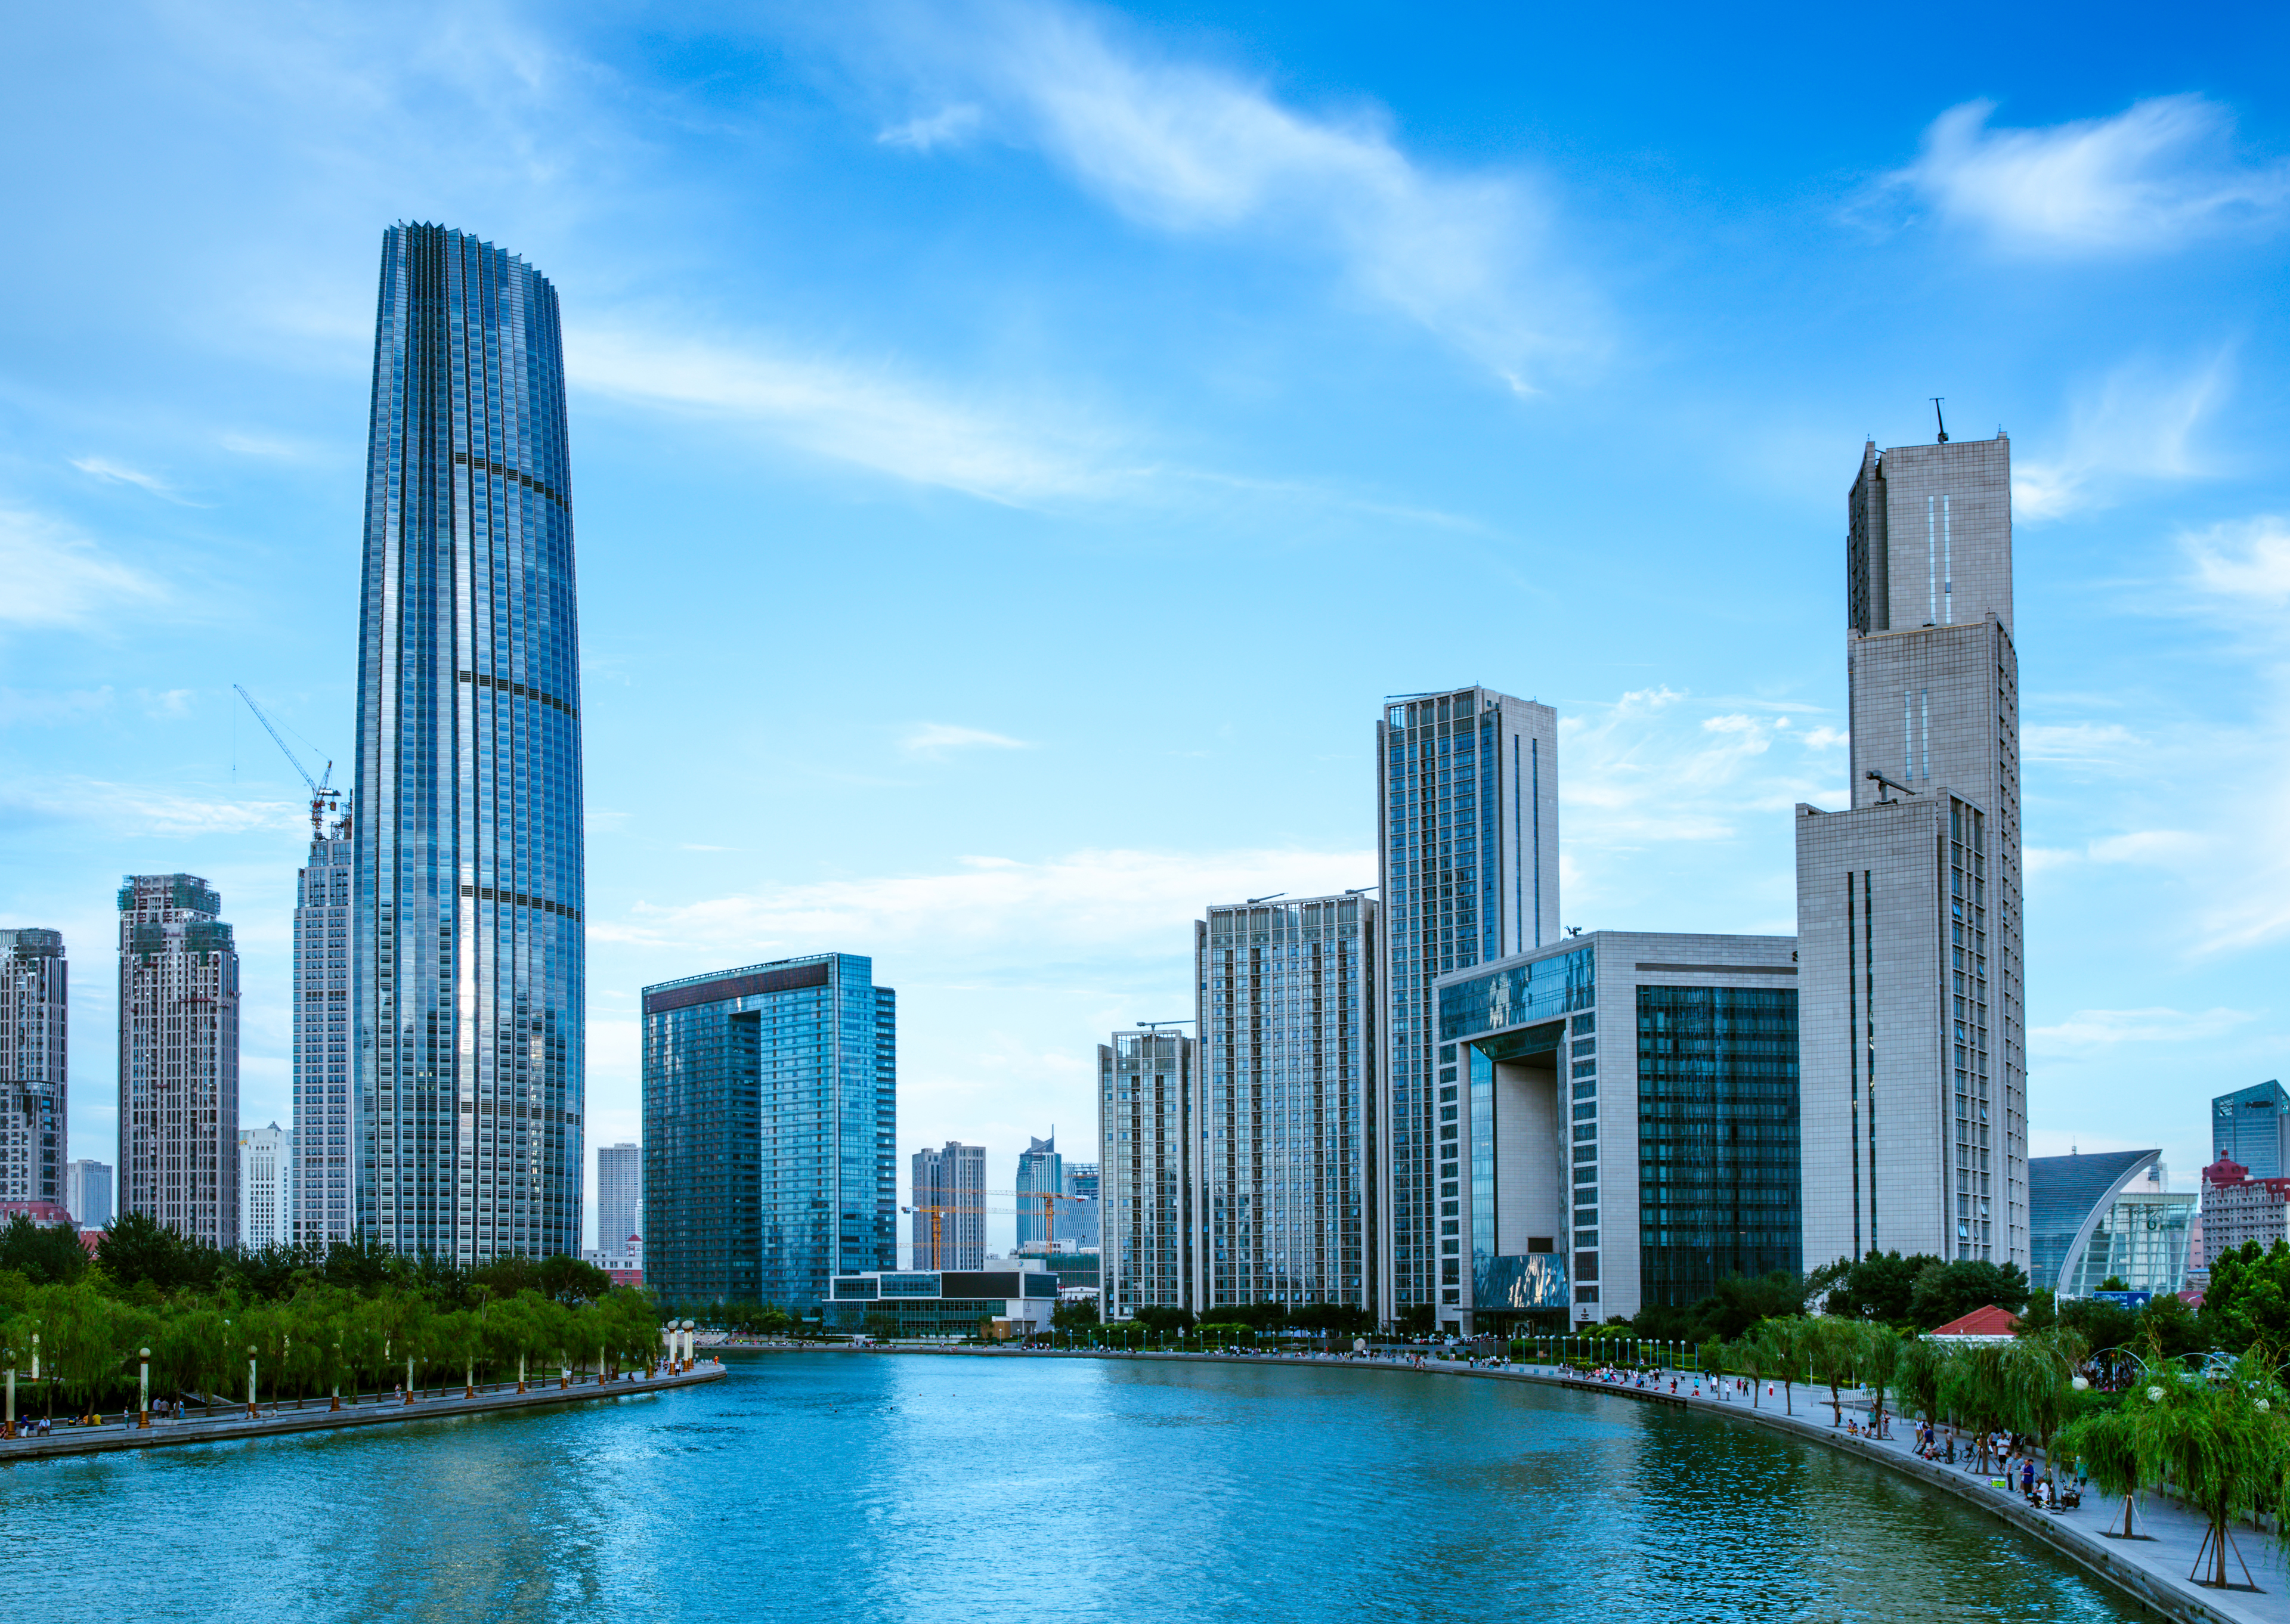 Contact Capital One >> Tianjin, North China's Gateway to the World | Prologis China